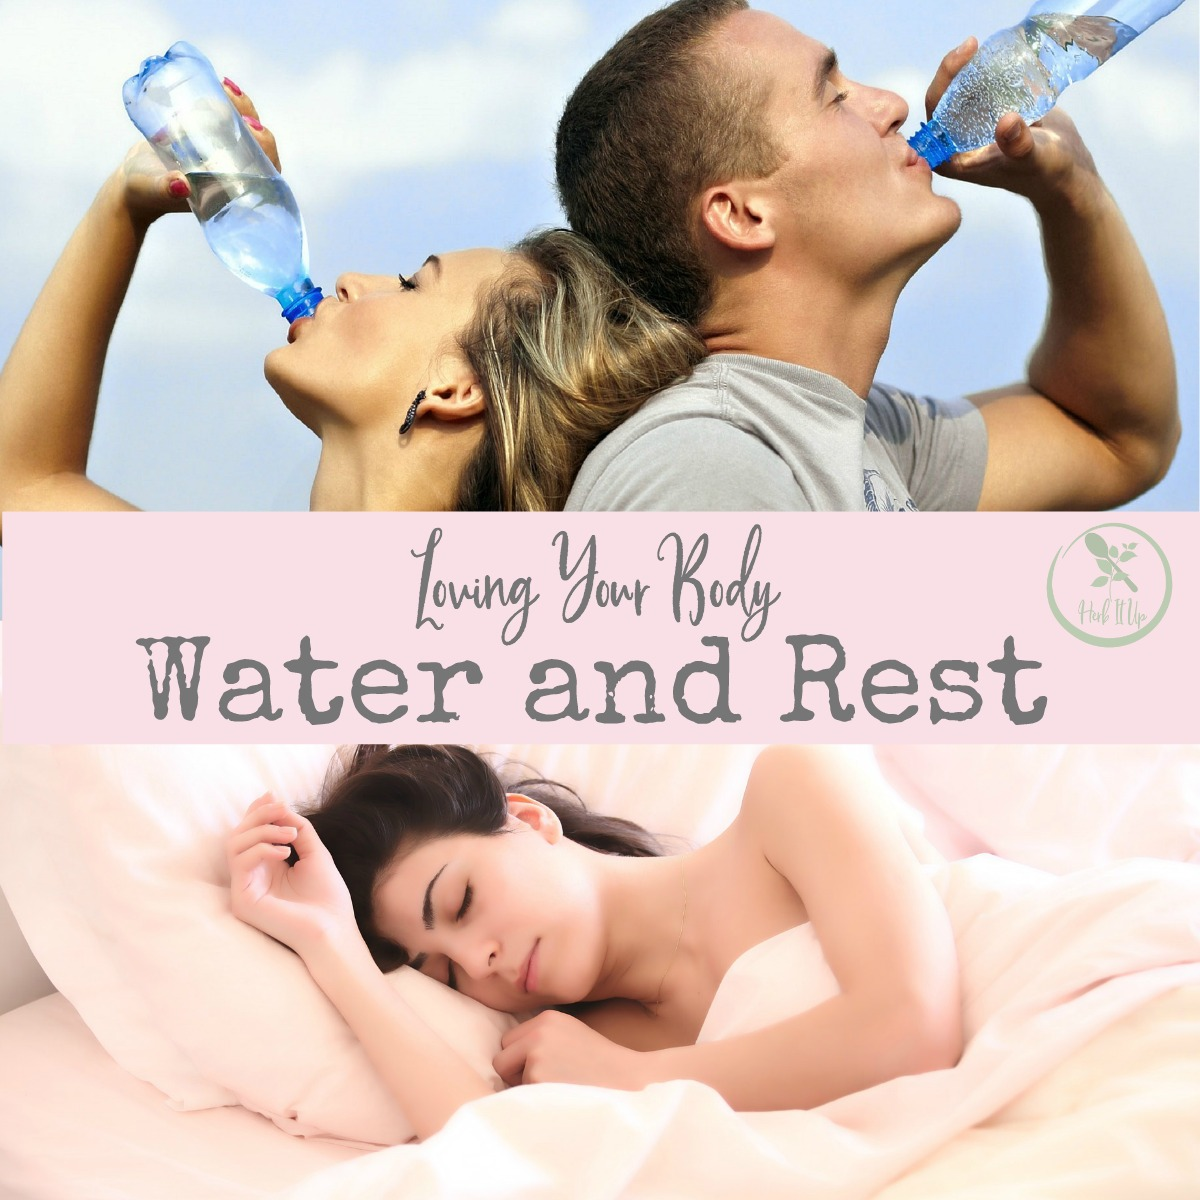 In order to truly love the health of our body we must be intentional in our water intake and amount of rest we get.  These are two of the most fundamental parts of loving your body.